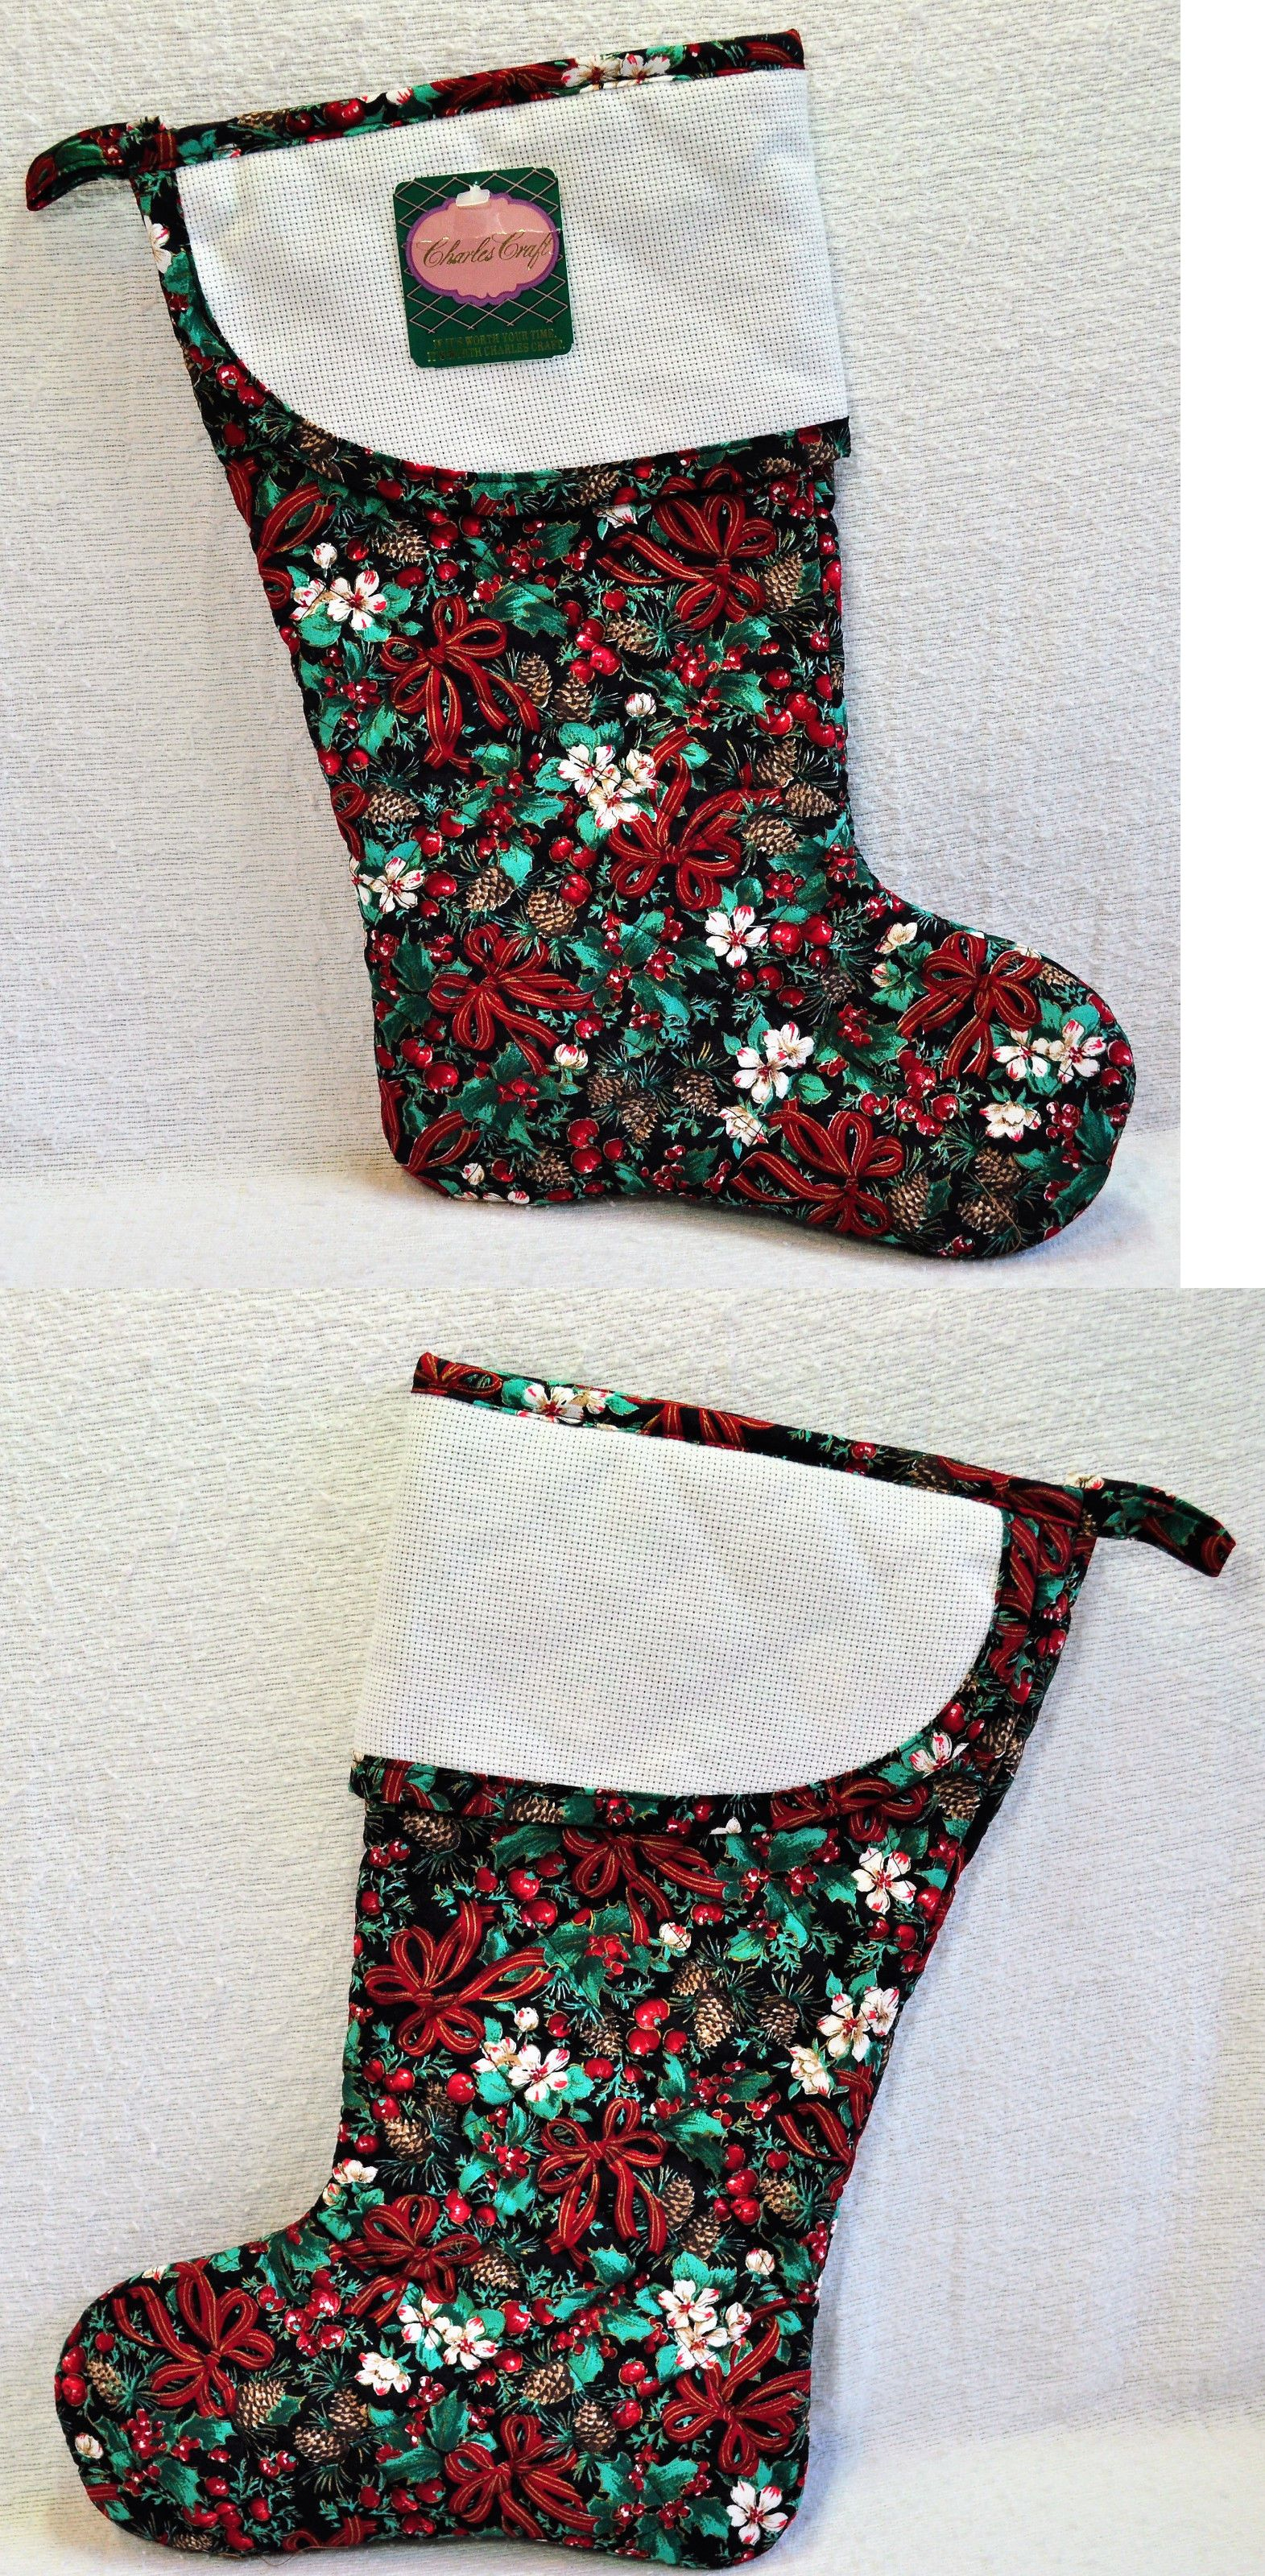 charles craft christmas stockings